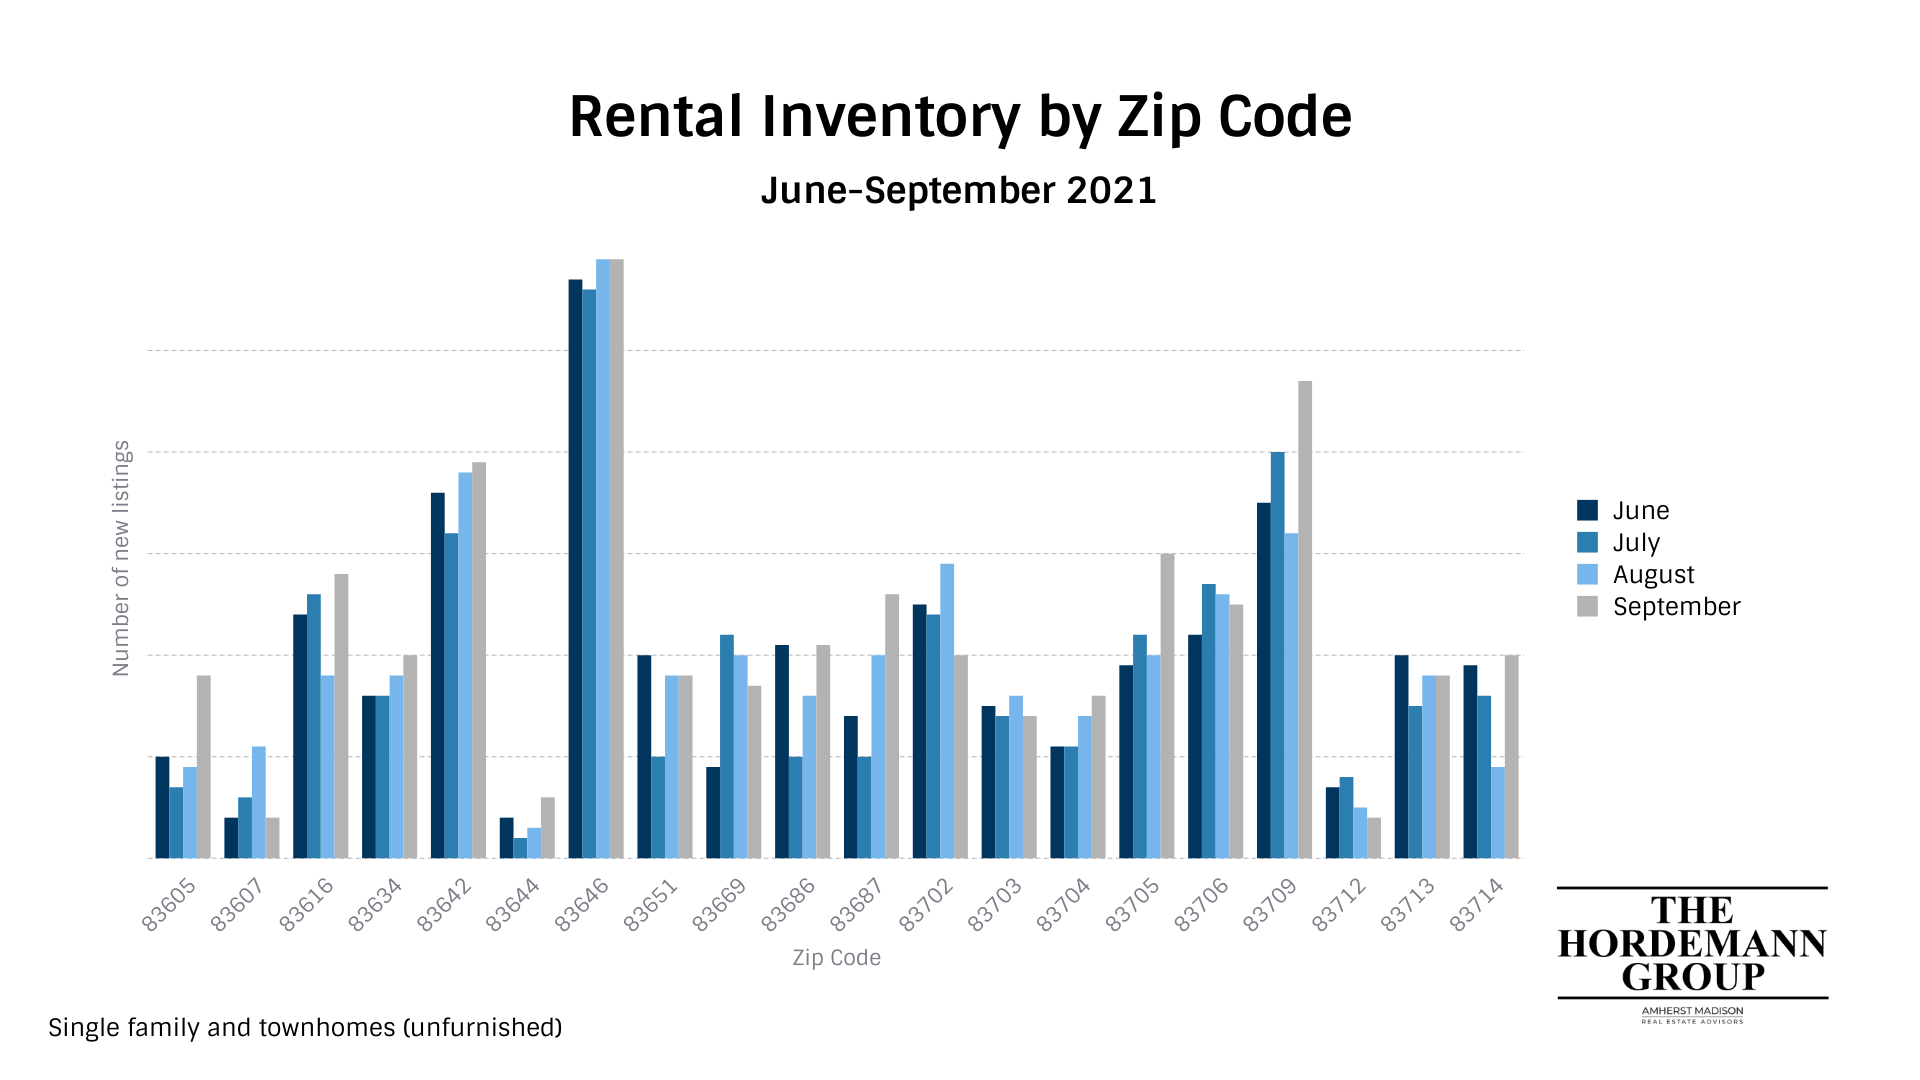 The rental inventory in Star, Idaho has continued to decline the last few months